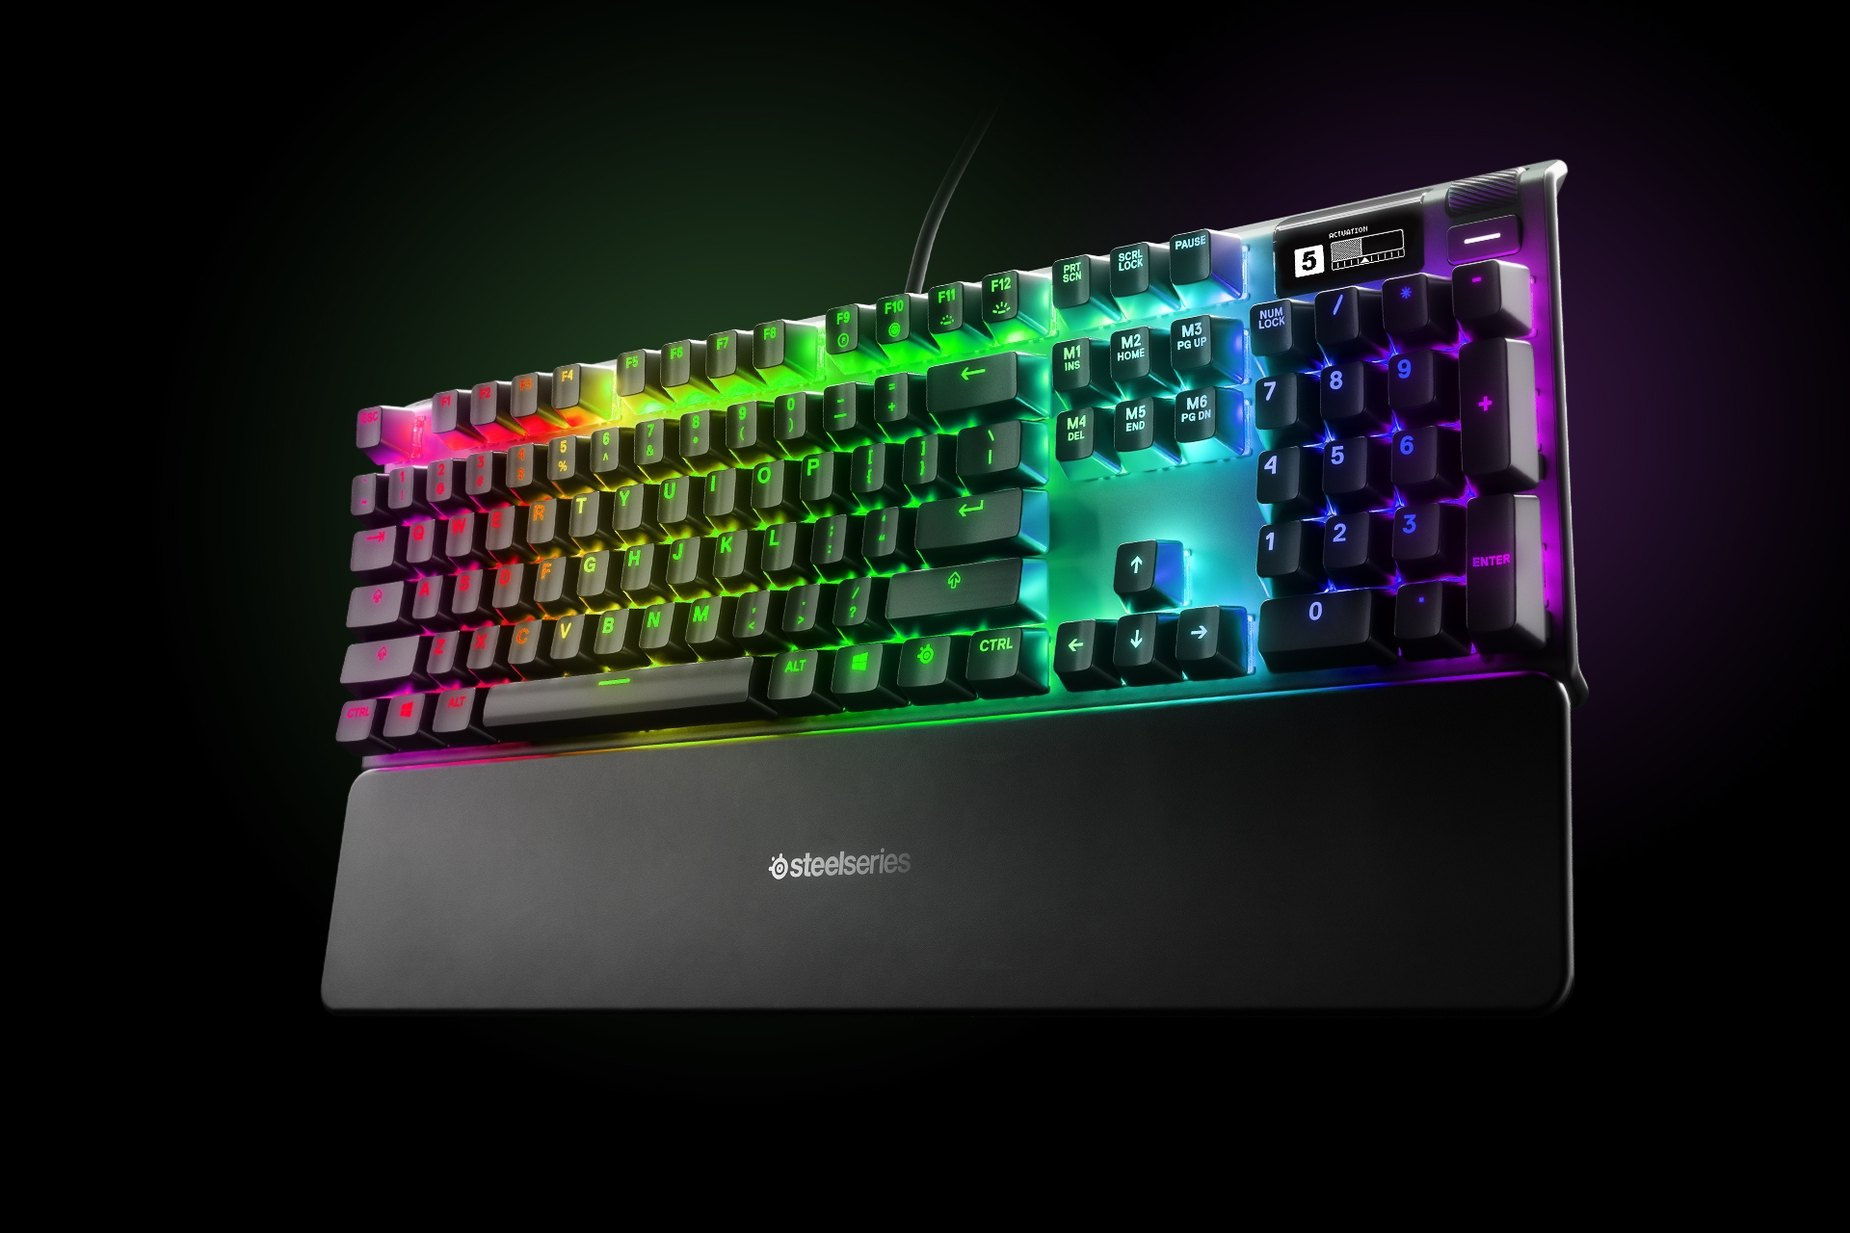 Скандинавский - Apex Pro gaming keyboard with the illumination lit up on dark background, also shows the OLED screen and controls used to change settings, switch actuation, and adjust audio